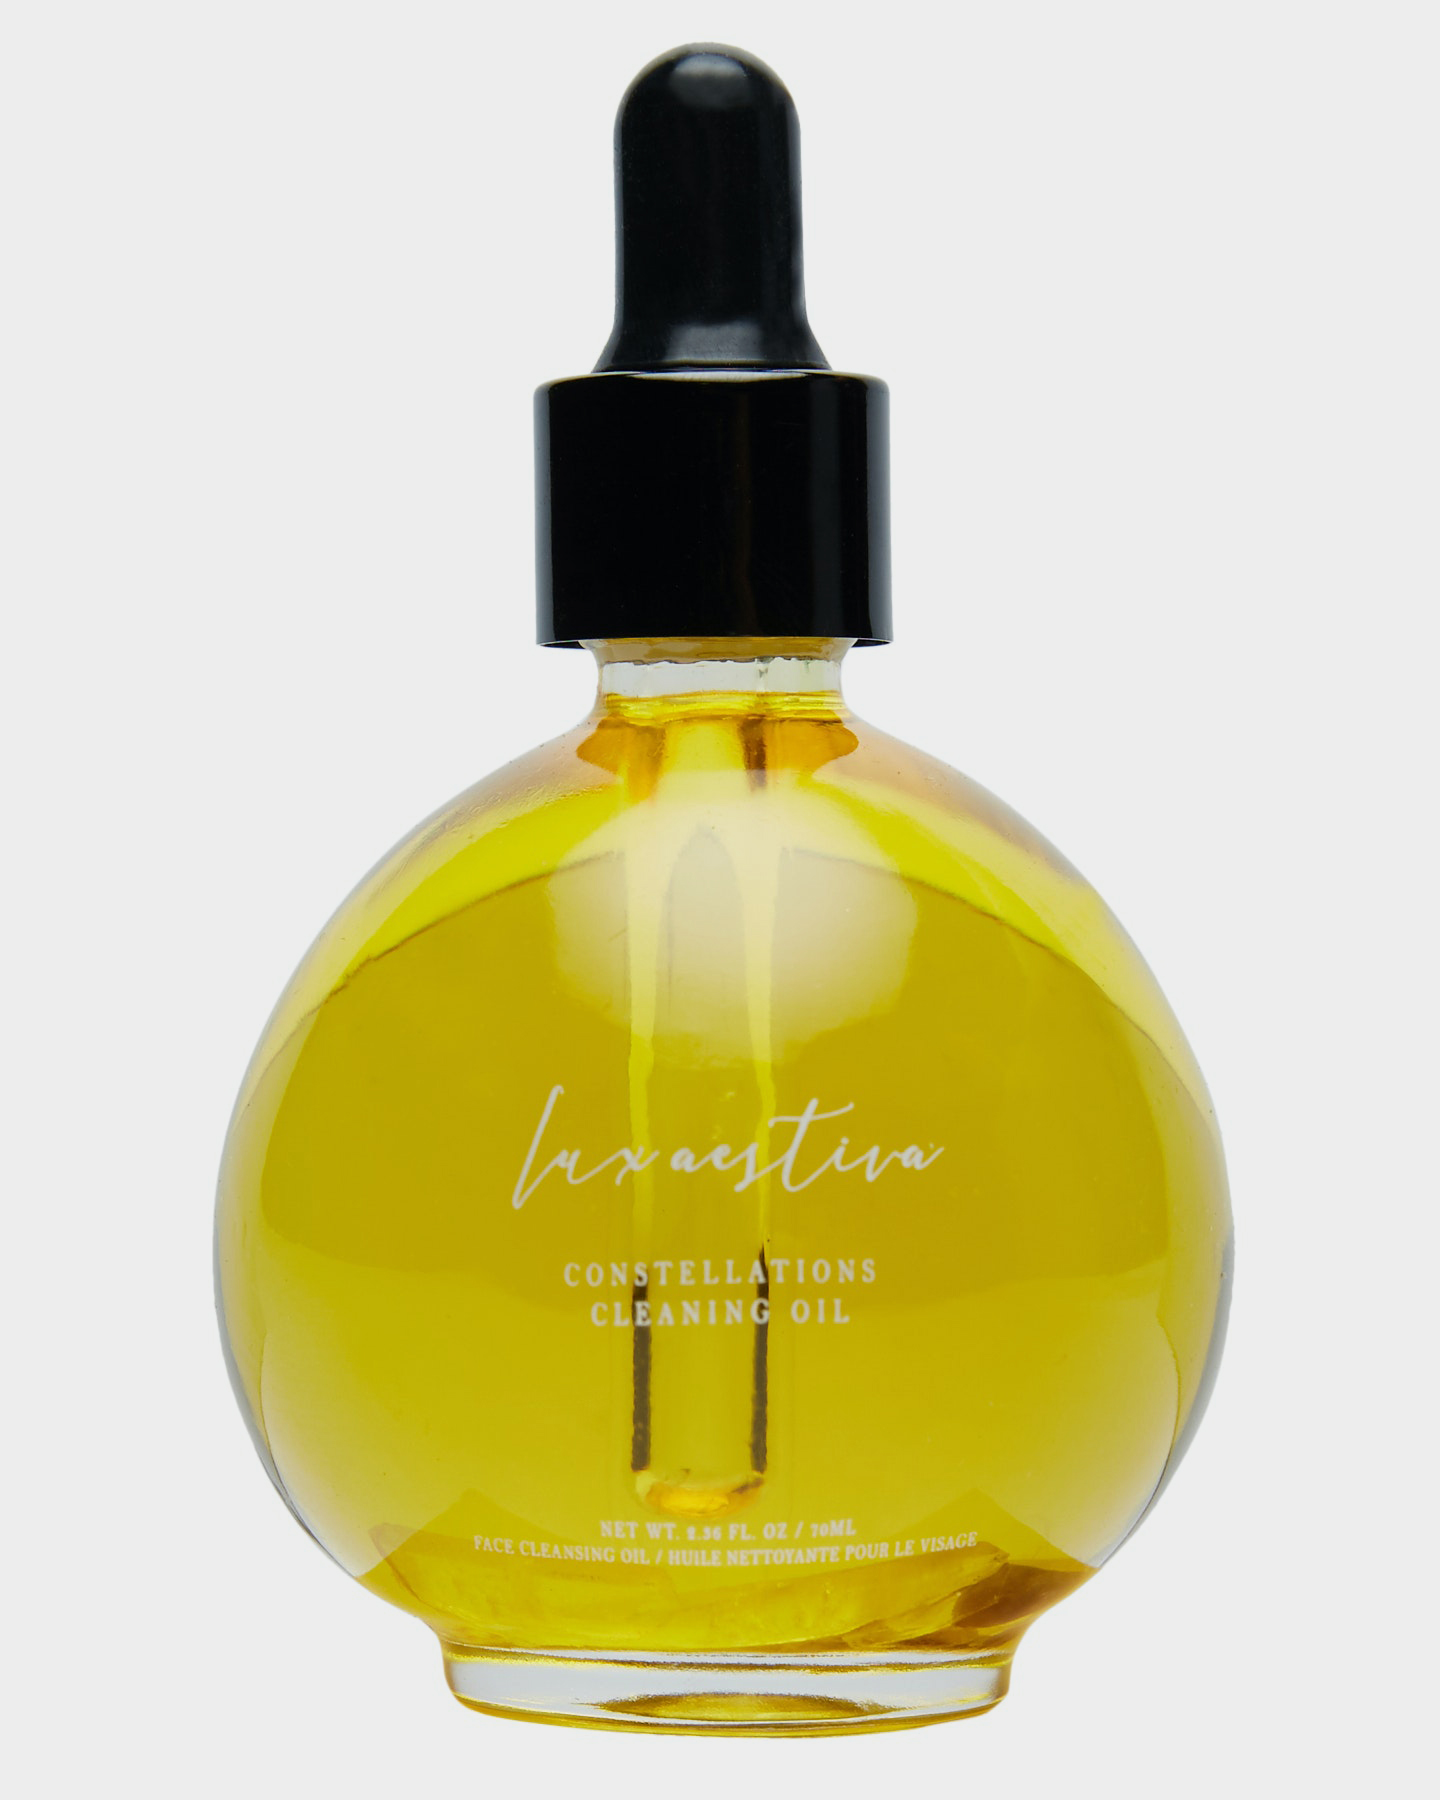 Lux Aestiva Constellations Cleansing Oil Natural